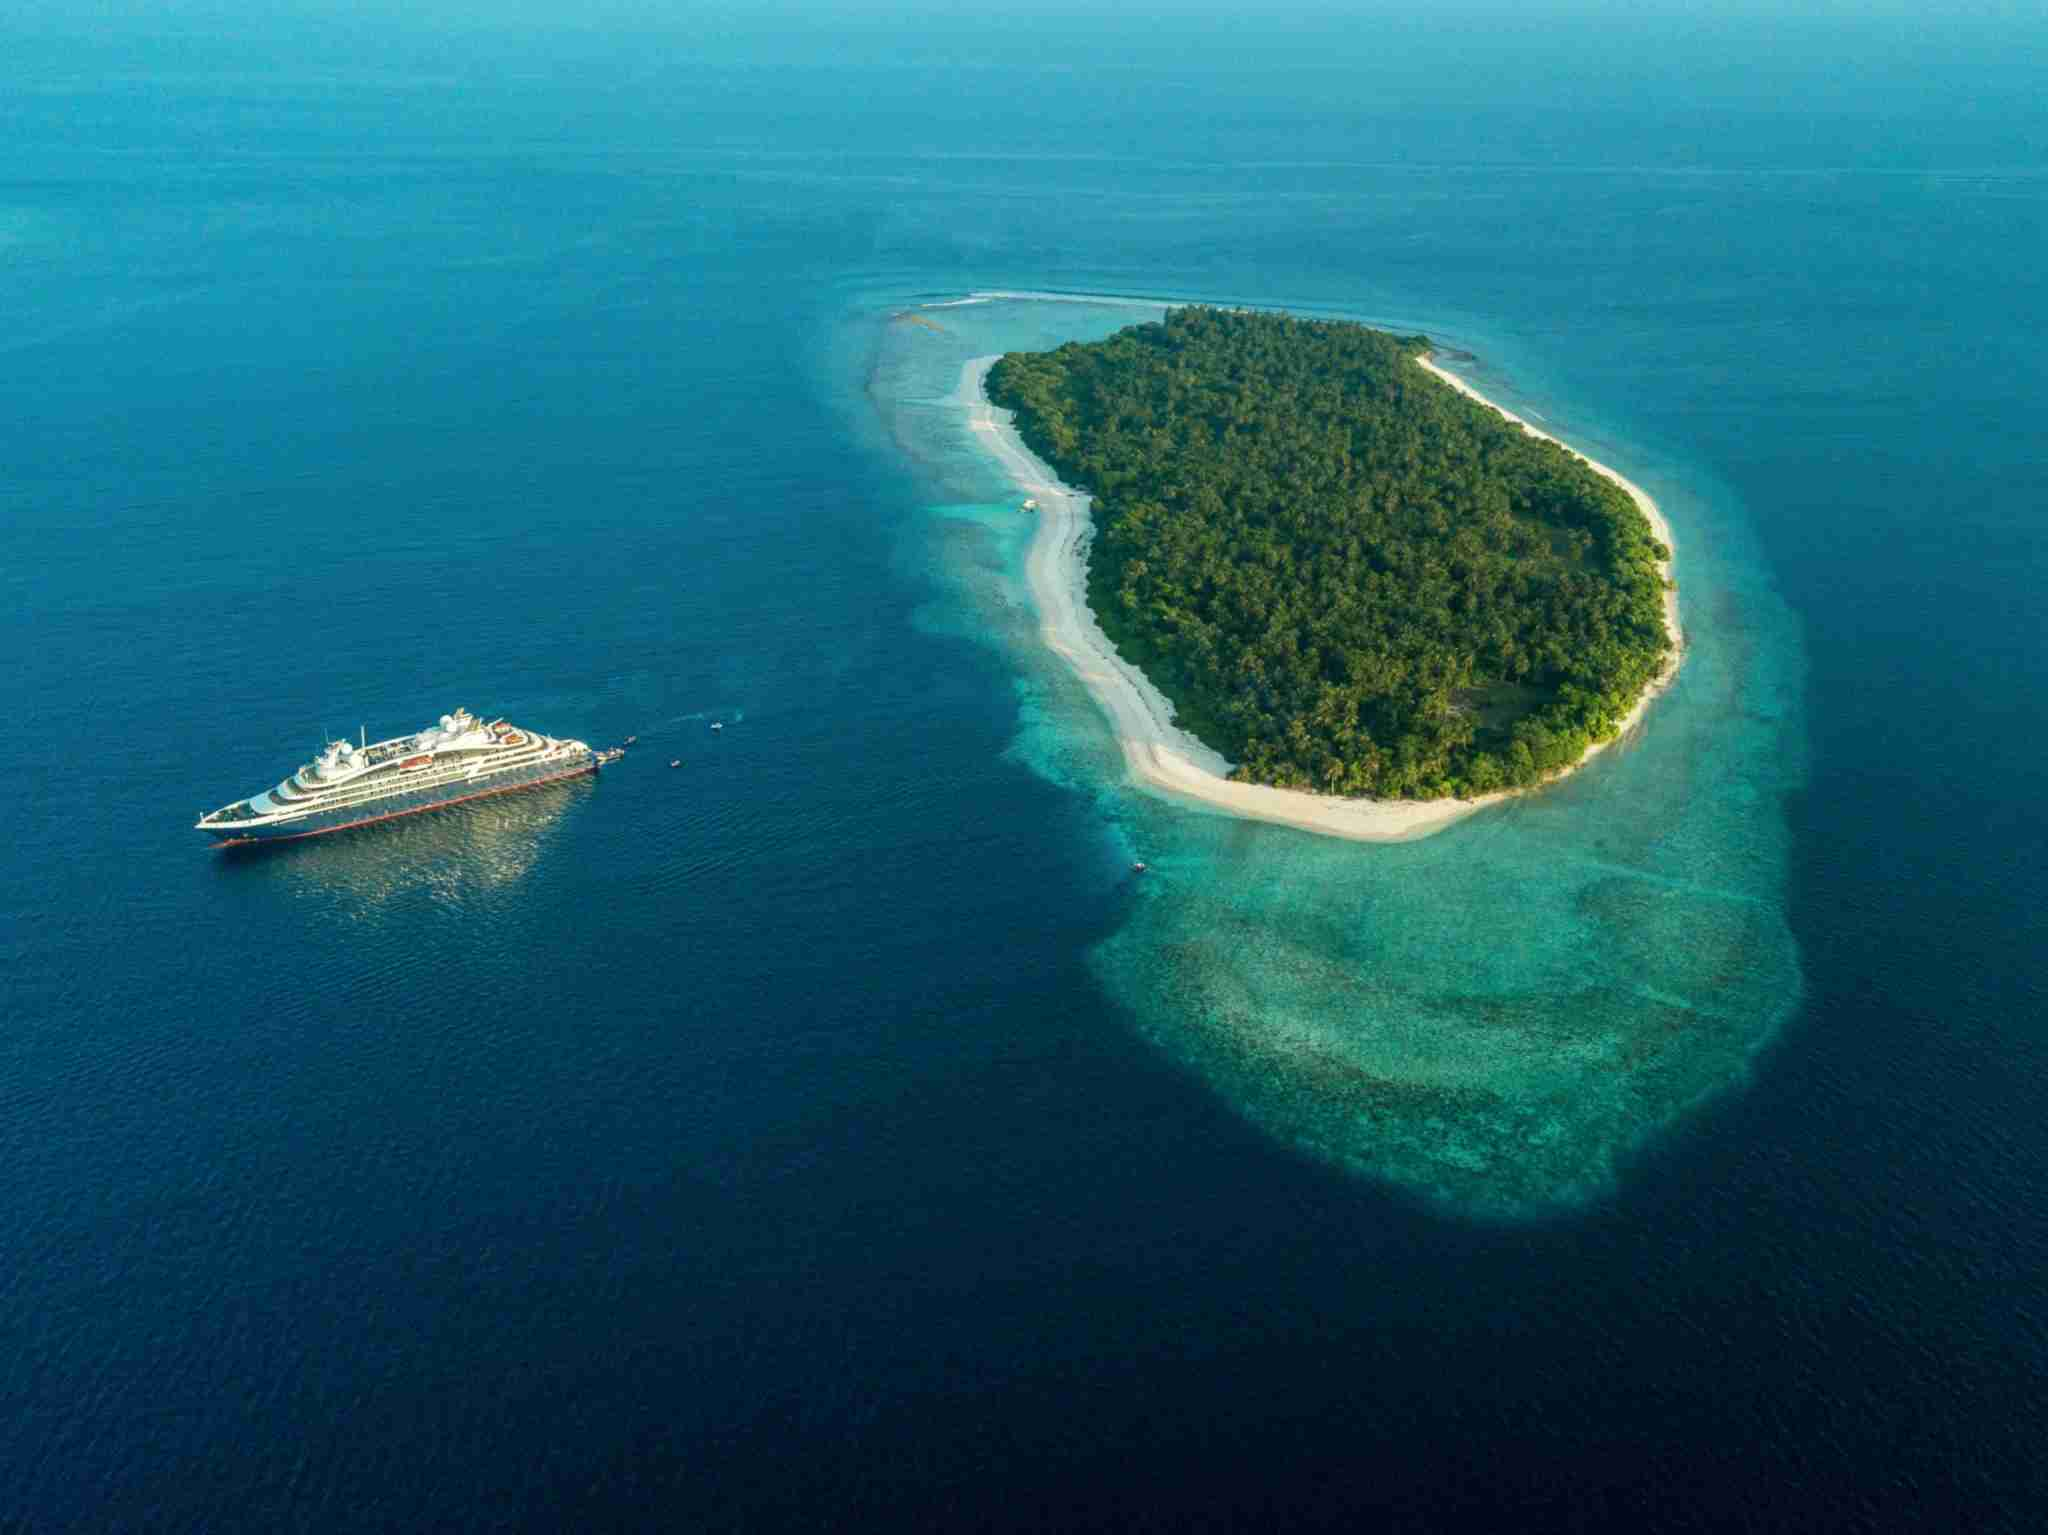 France-based cruise line Ponant offers voyages around the Maldives on an intimate, 184-passenger vessel. (Photo courtesy of Ponant).